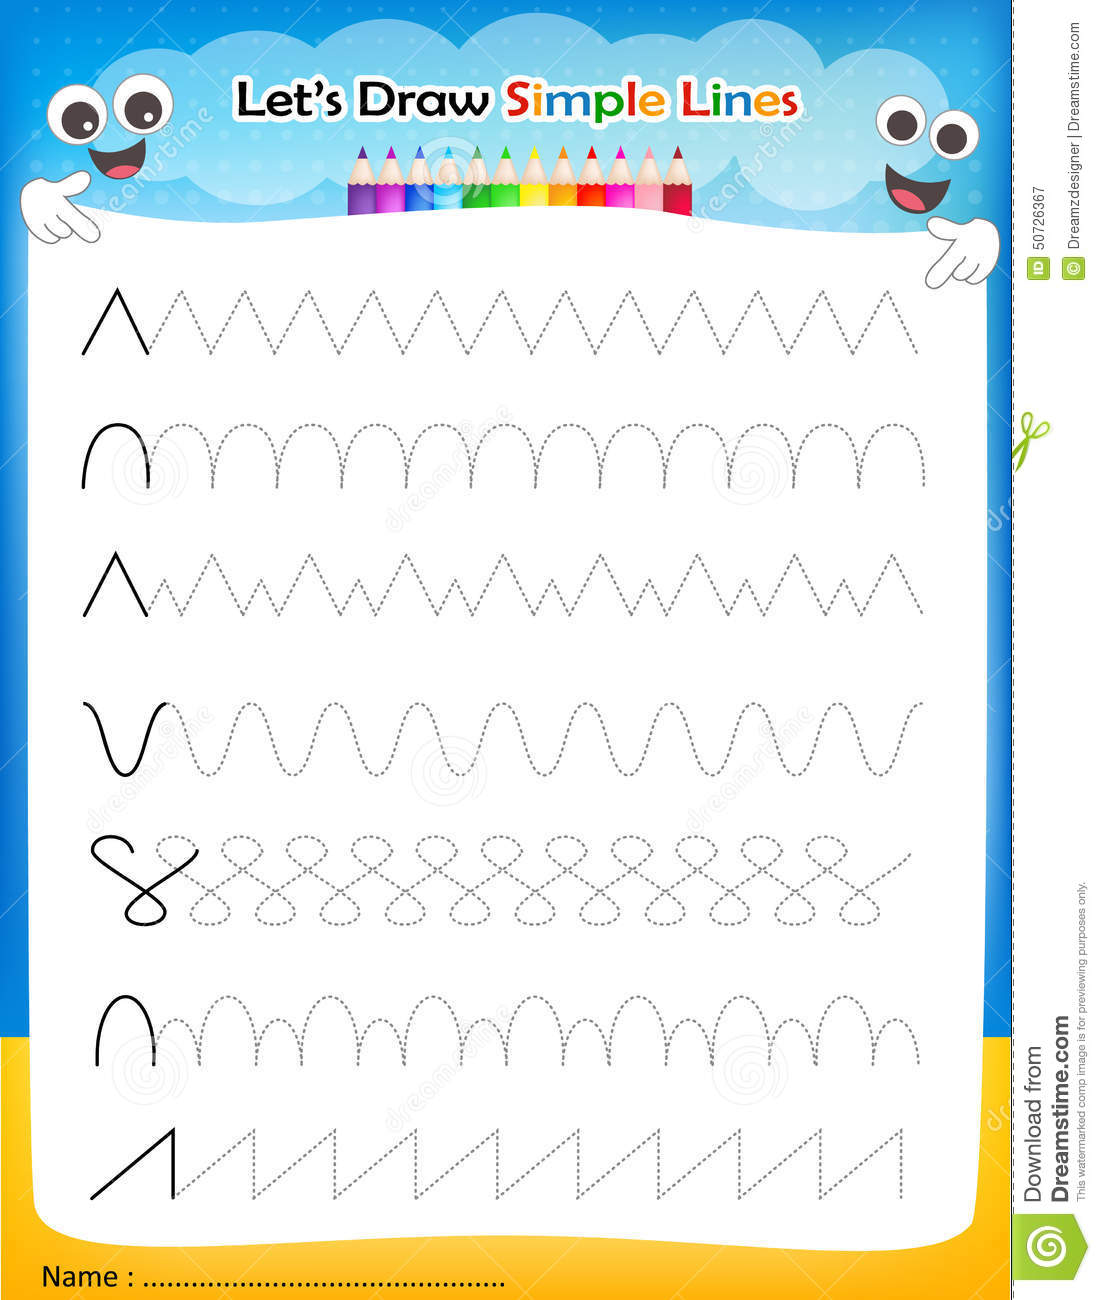 draw simple lines printable worksheet for preschool / kindergarten ...